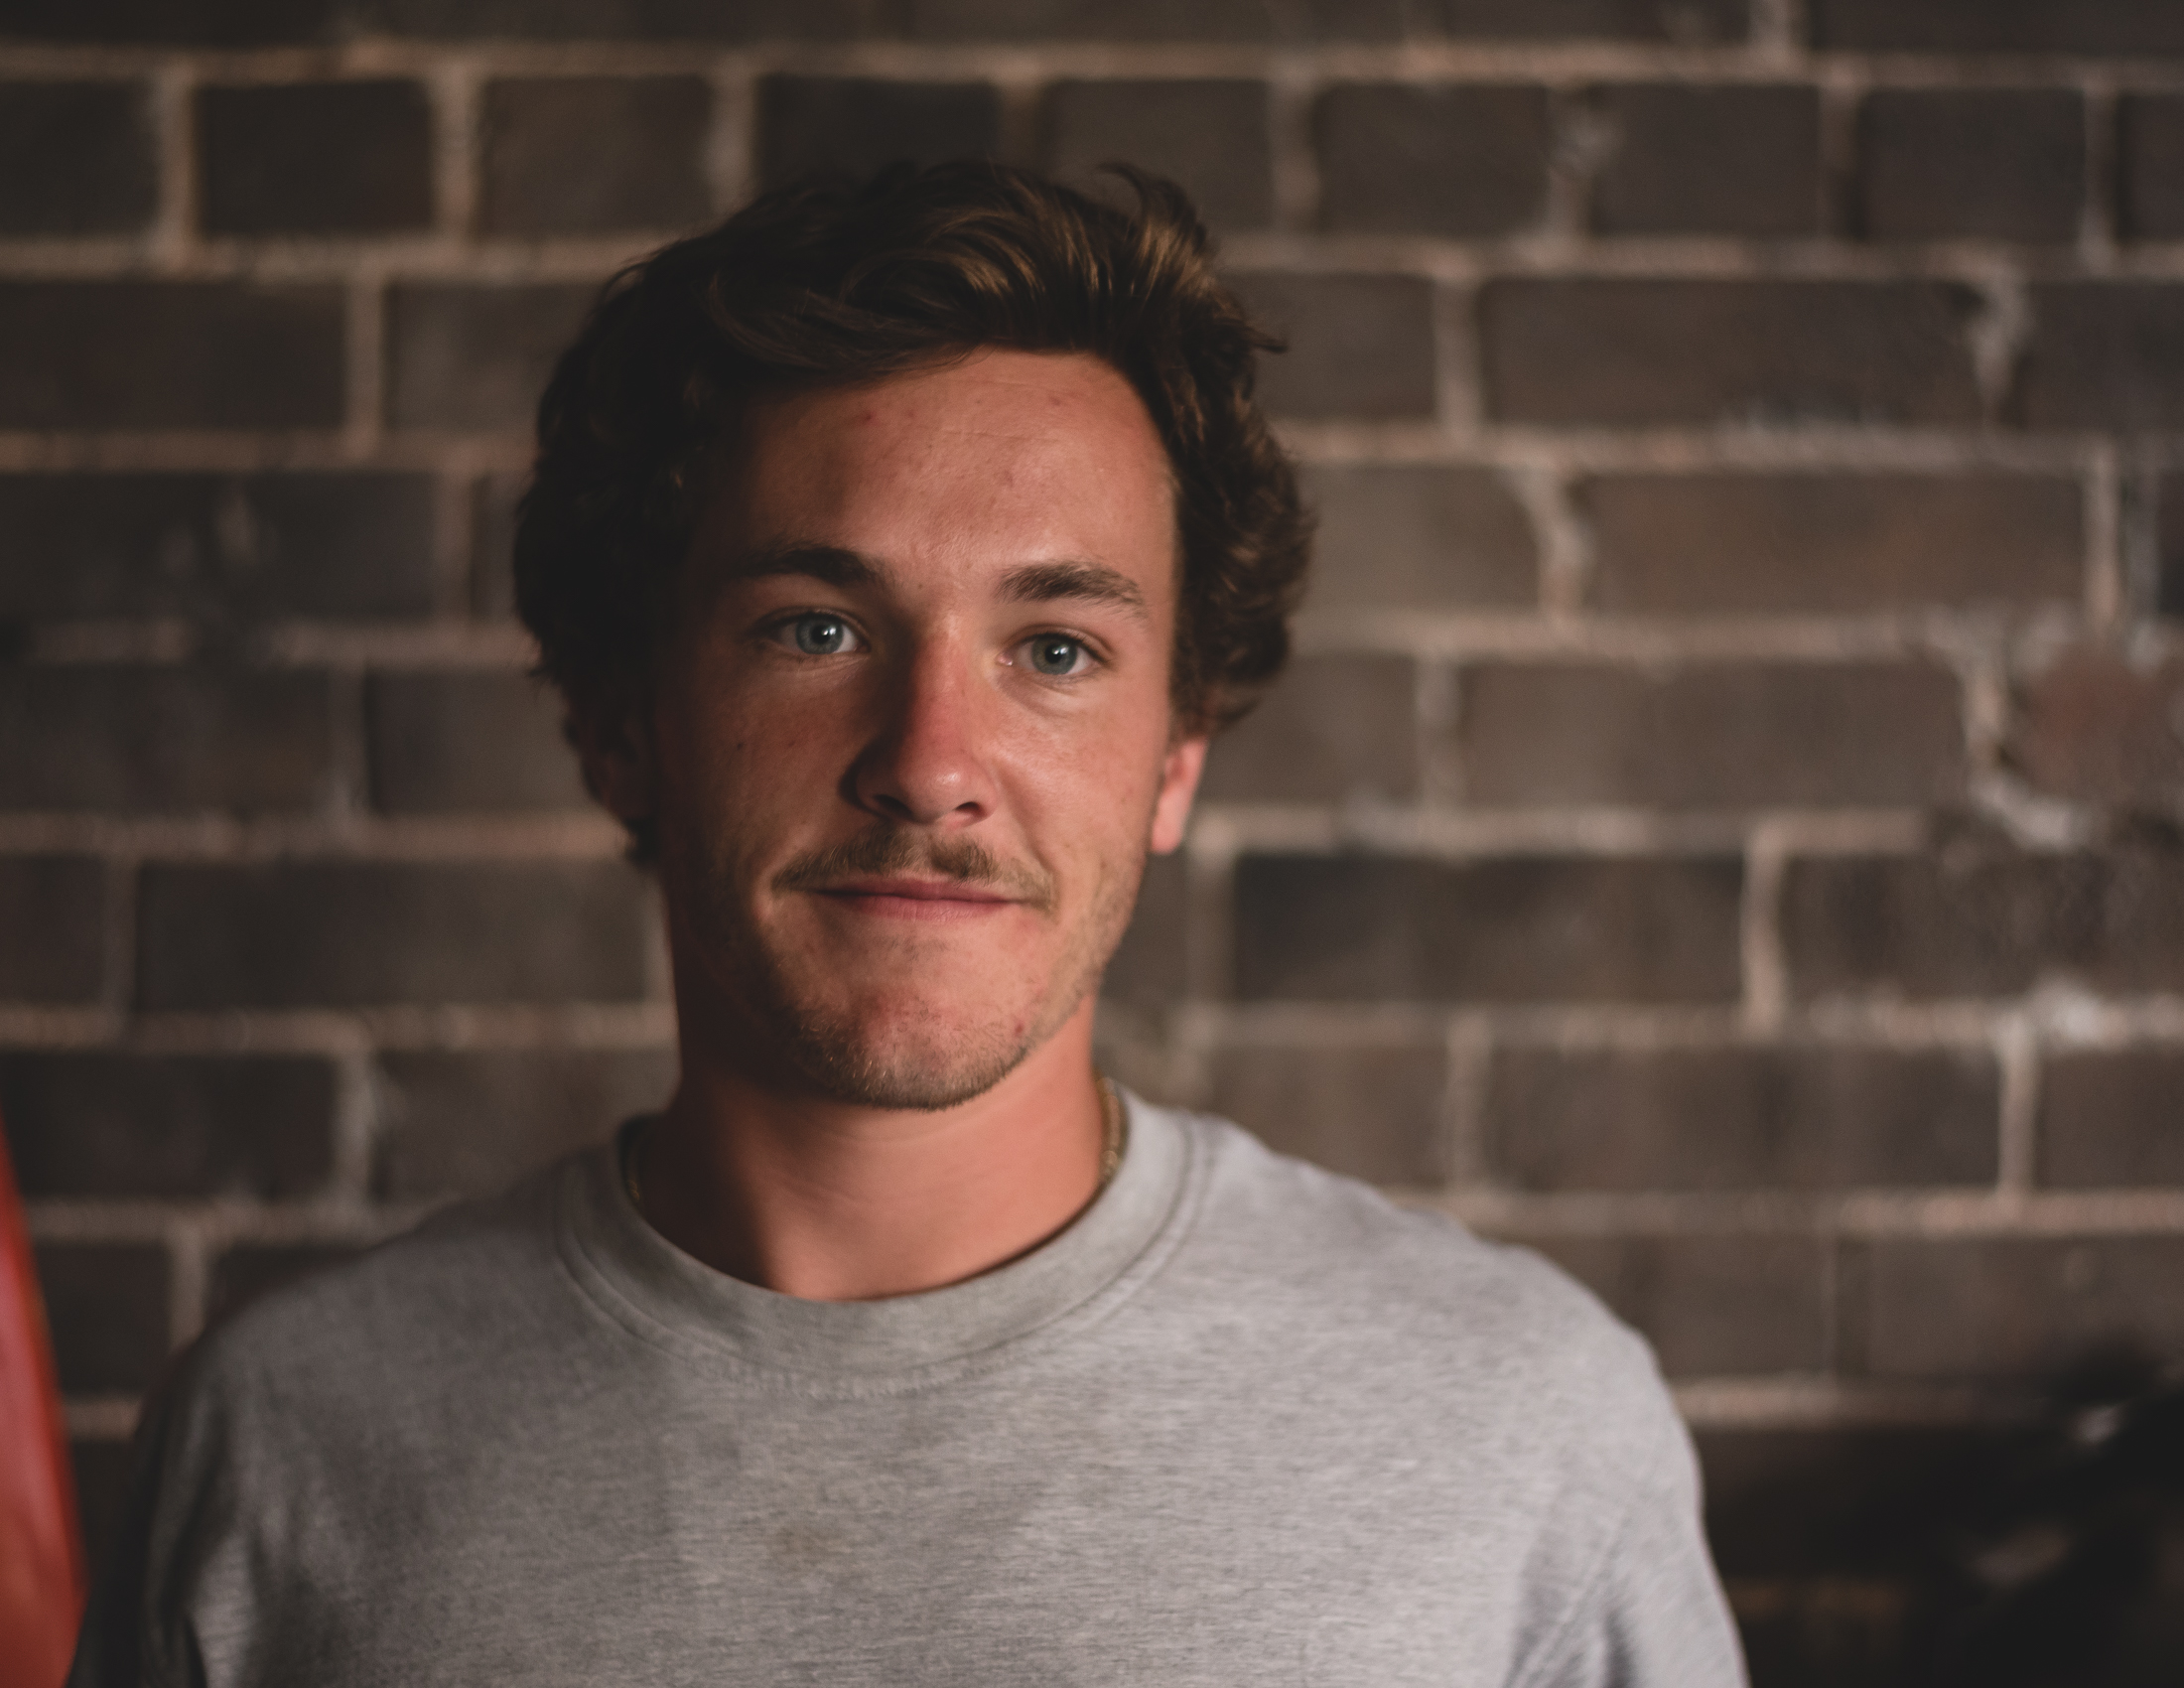 RYDER LAWSON - Skate Coach and TalentAge: 21Years Skating: 21Stance: RegularFavourite trick: Nollie front feebleRyder has won a ton of Australian skate competitions, had plenty of photos run in Australian skateboarding magazines and a few video parts to boot. In 2018, he qualified as a wildcard for Sydney's first X Games and skated alongside some of the world's top pros. It's a pleasure having this Cronulla local on Totem trips, both as a coach and a skate demo guy.